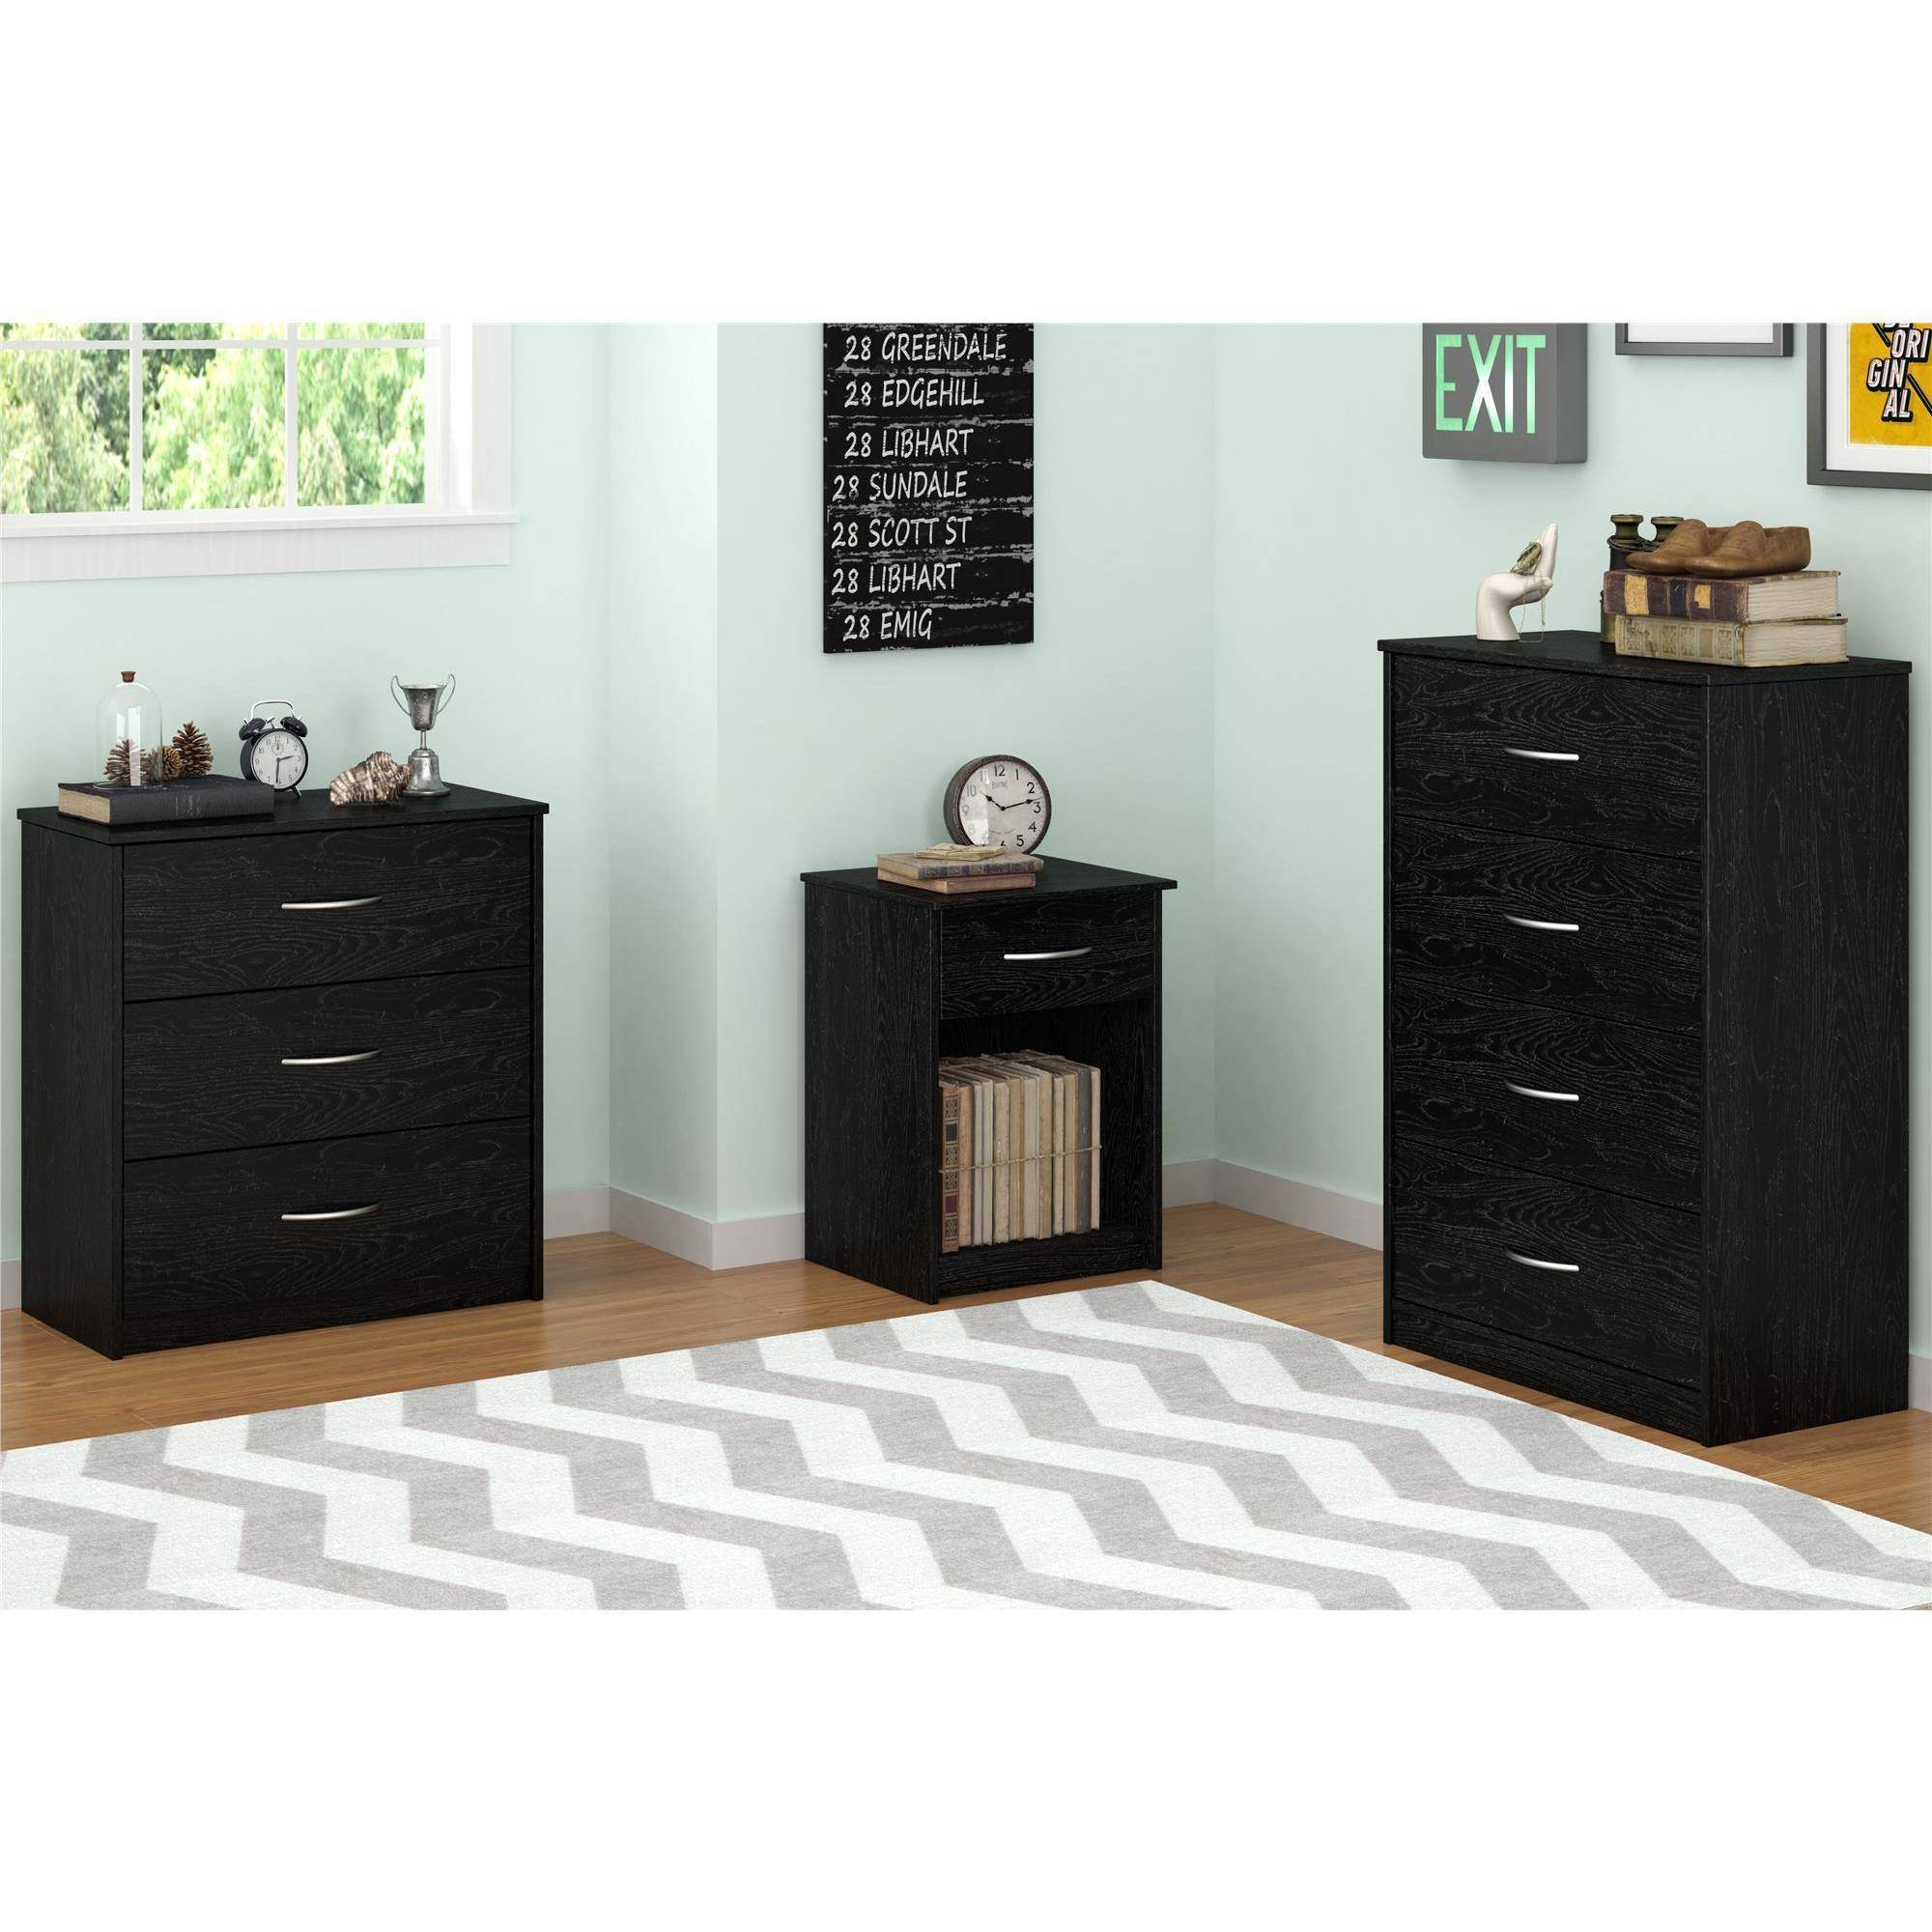 Mainstays 3 Drawer Dresser Multiple Colors